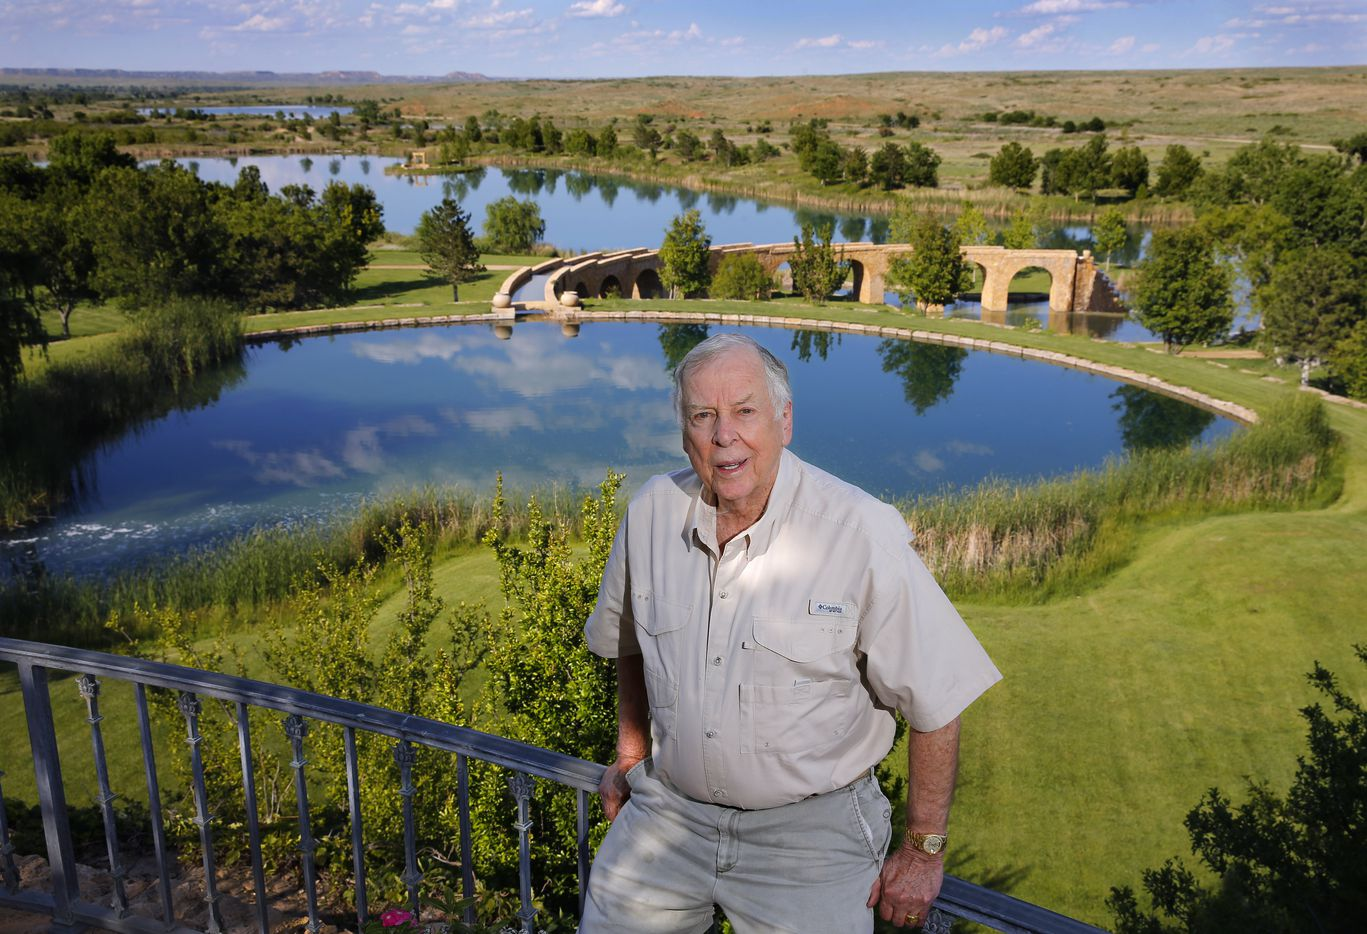 Pickens posed in 2017 at a spot overlooking a series of manmade lakes leading from The Lake House to The Lodge on his Mesa Vista Ranch in the panhandle. The ranch took nearly 10 years to build, including the stone aqueduct shown in the background.